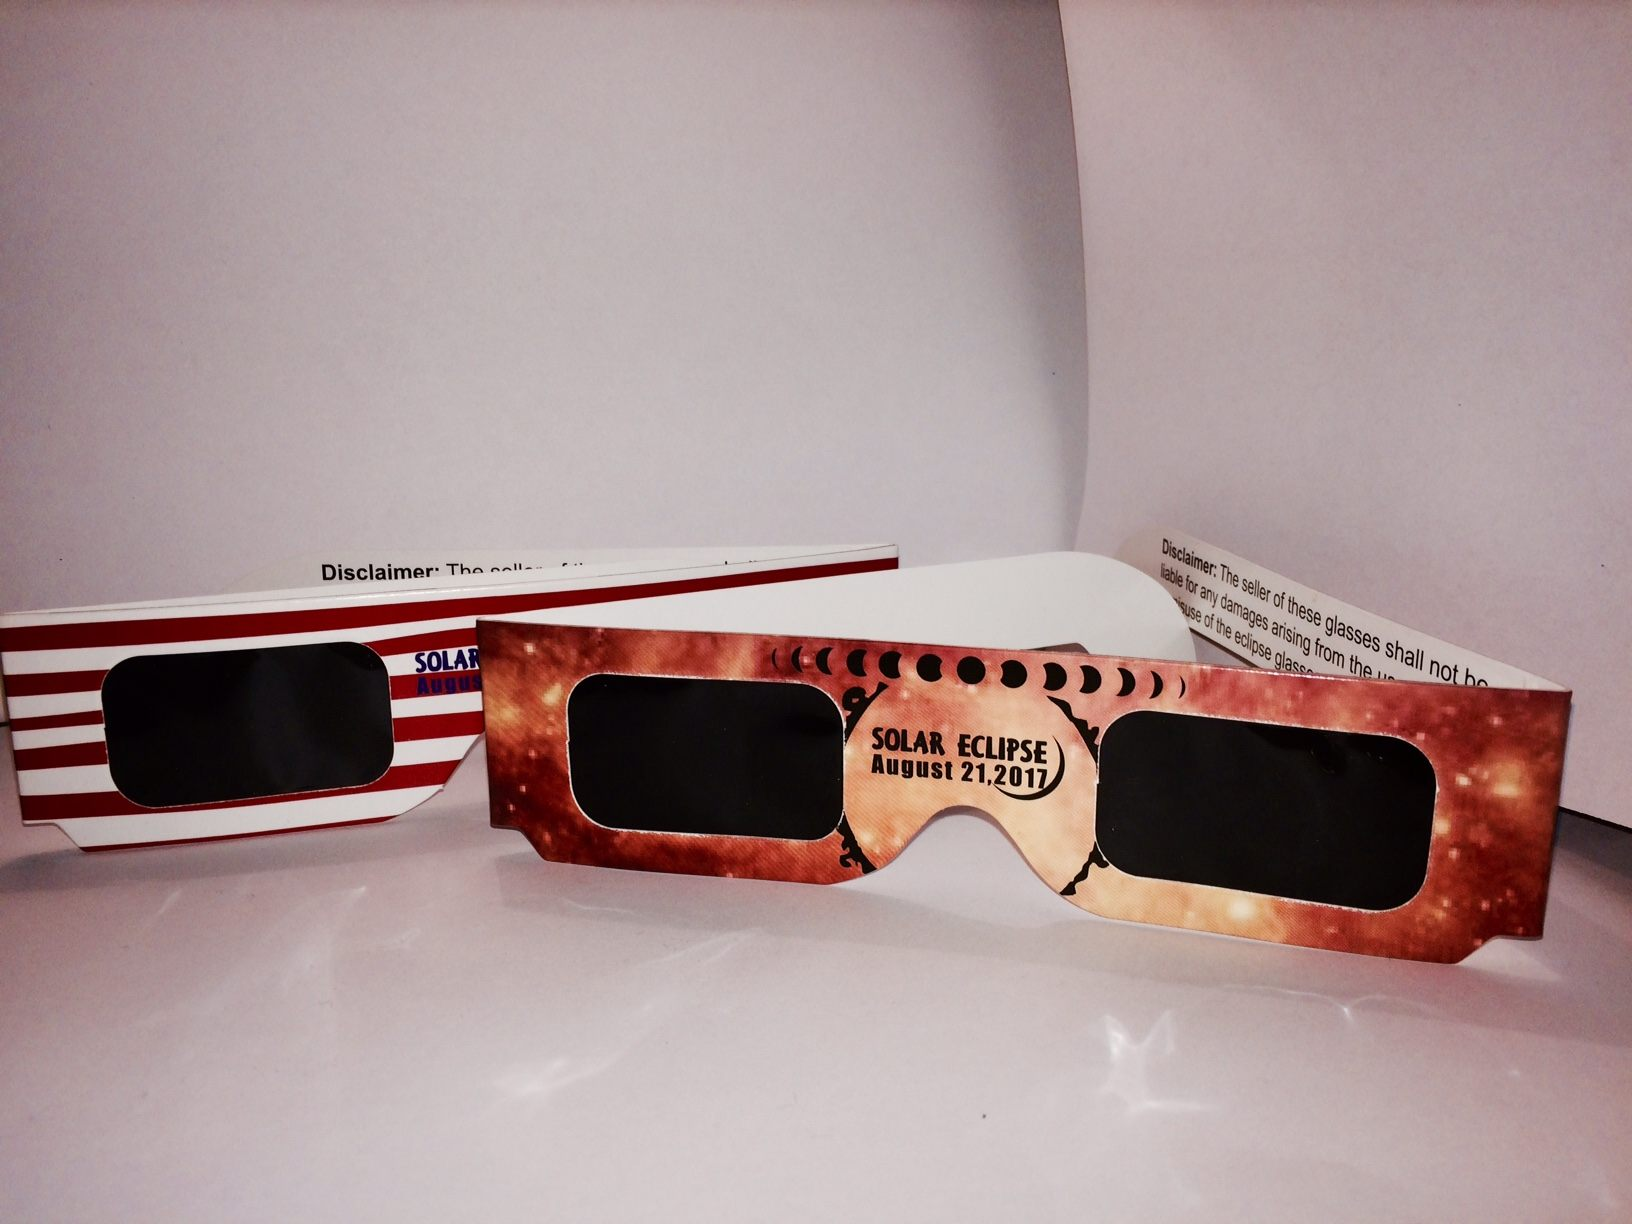 Eclipse glasses should not let any other light through except for an orange glow from the sun